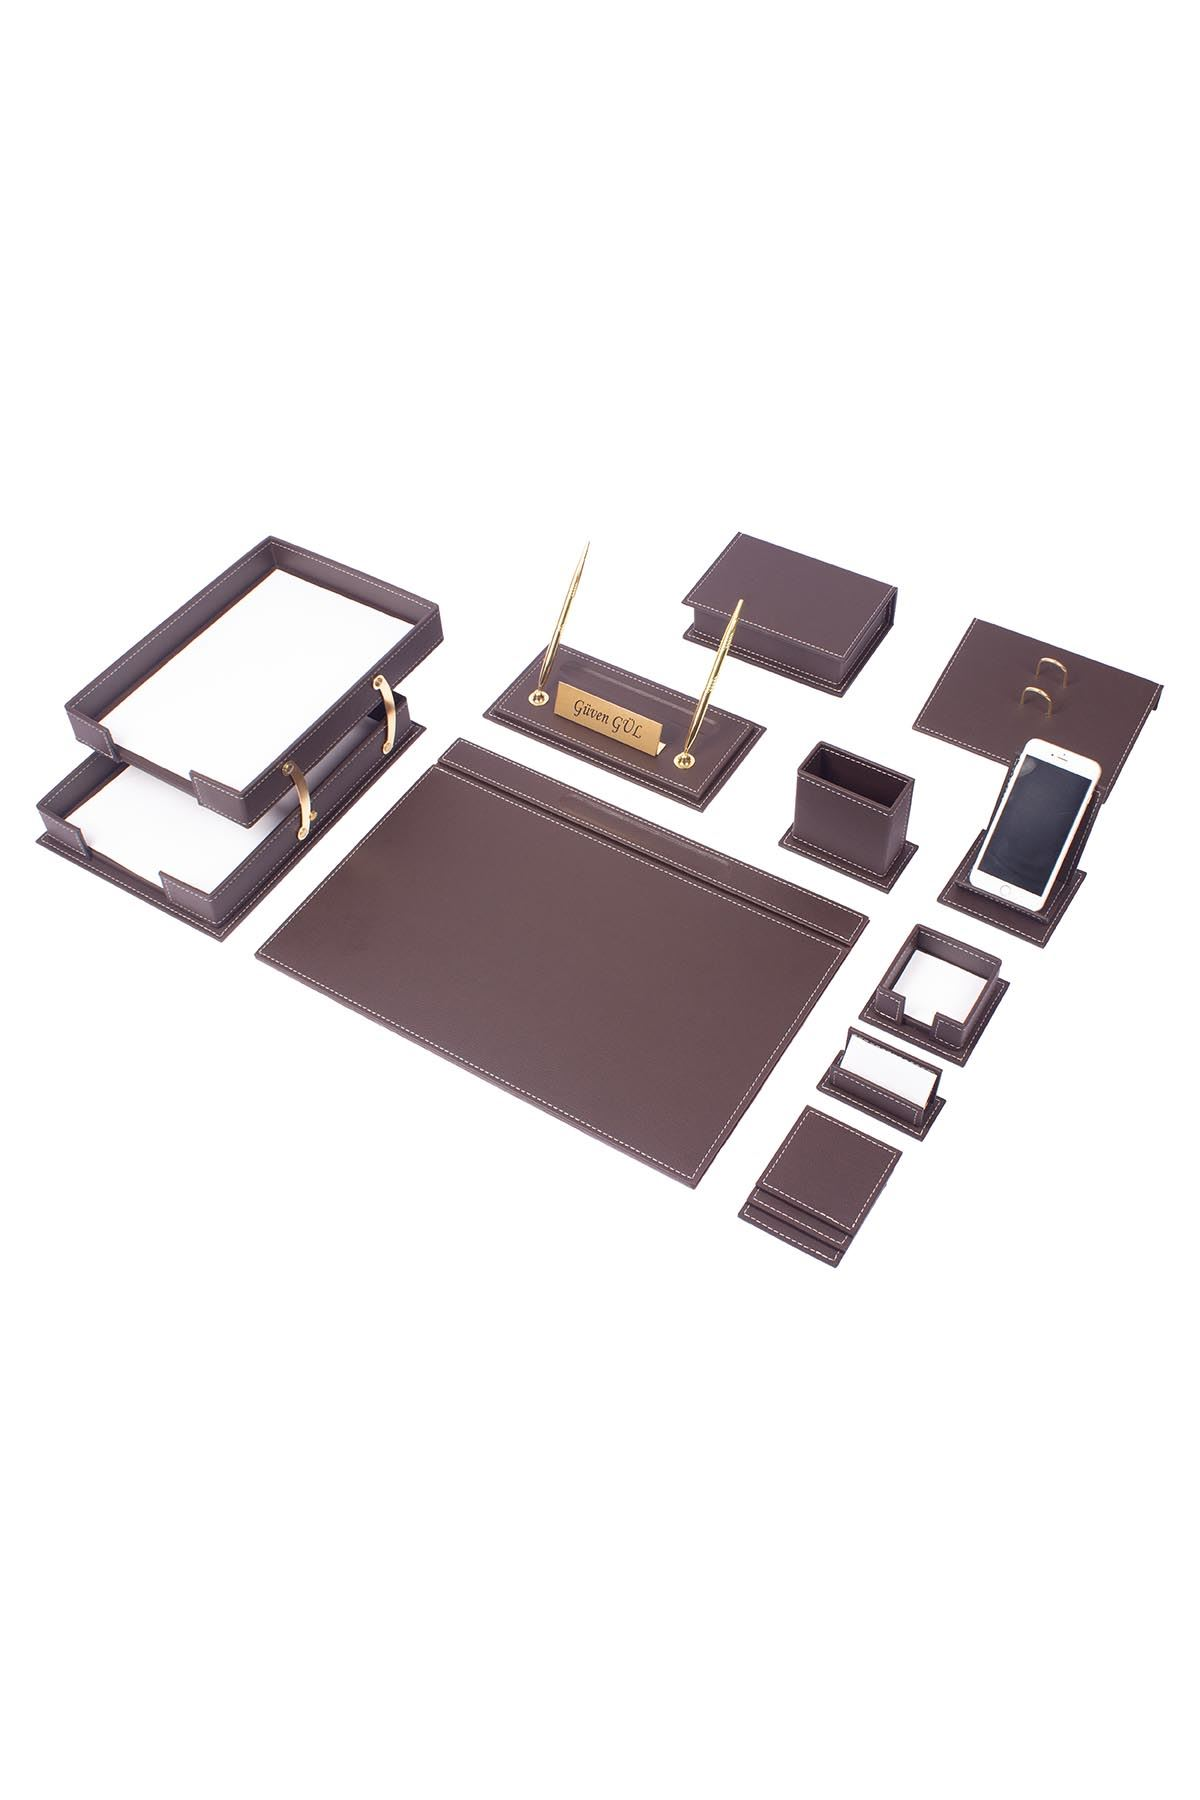 Vega Leather Desk Set Brown 14 Accessories